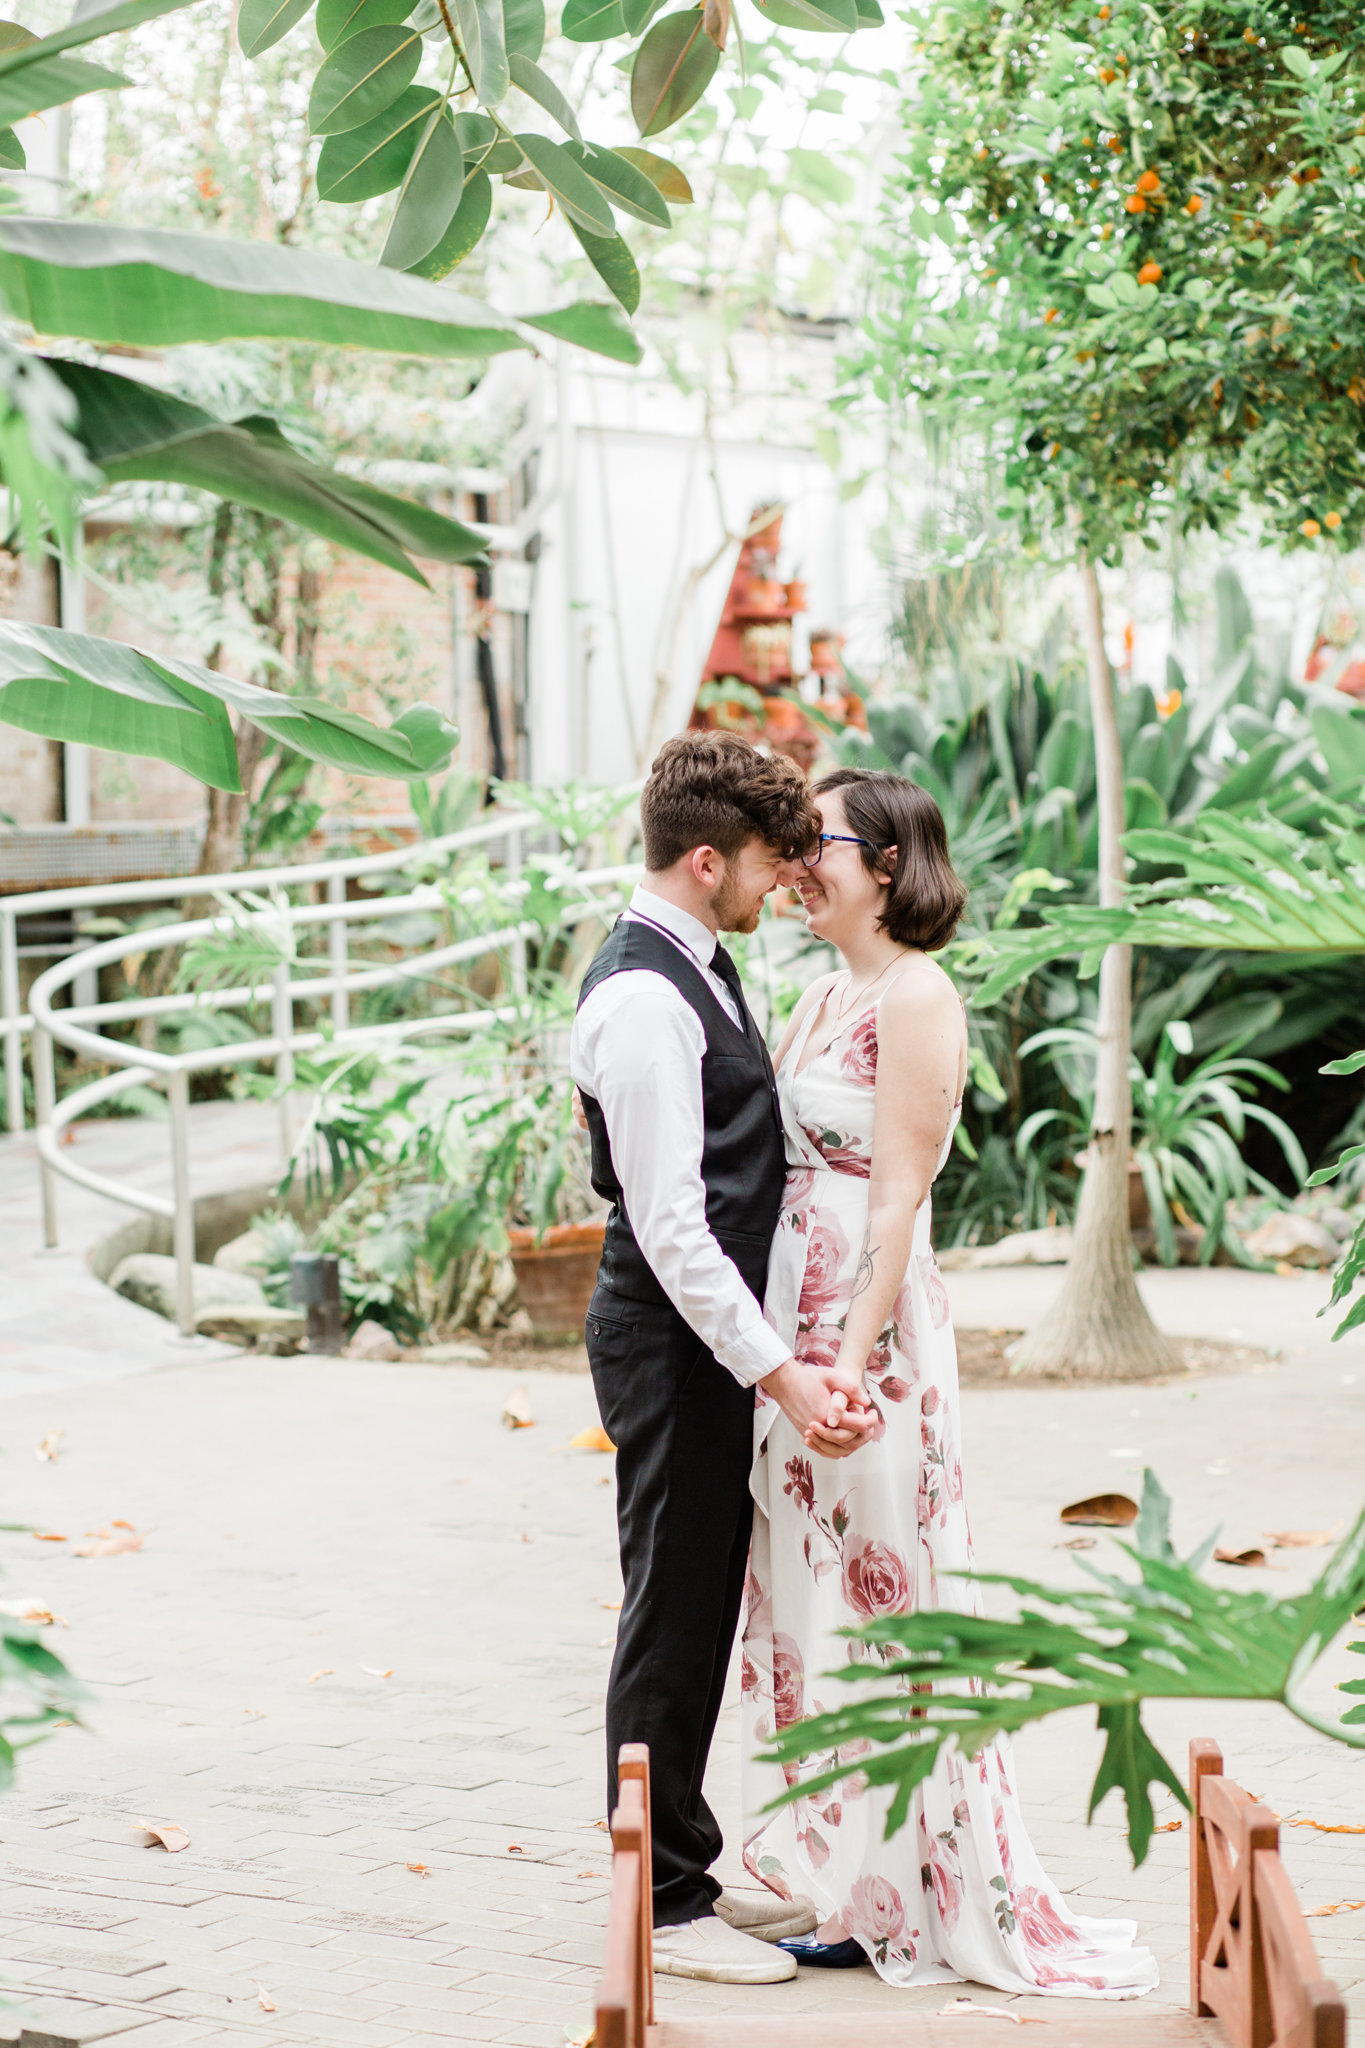 Cassidy-Sam-Potawatomi-Conservatory-South-Bend-Indiana-Engagement-Session_0013